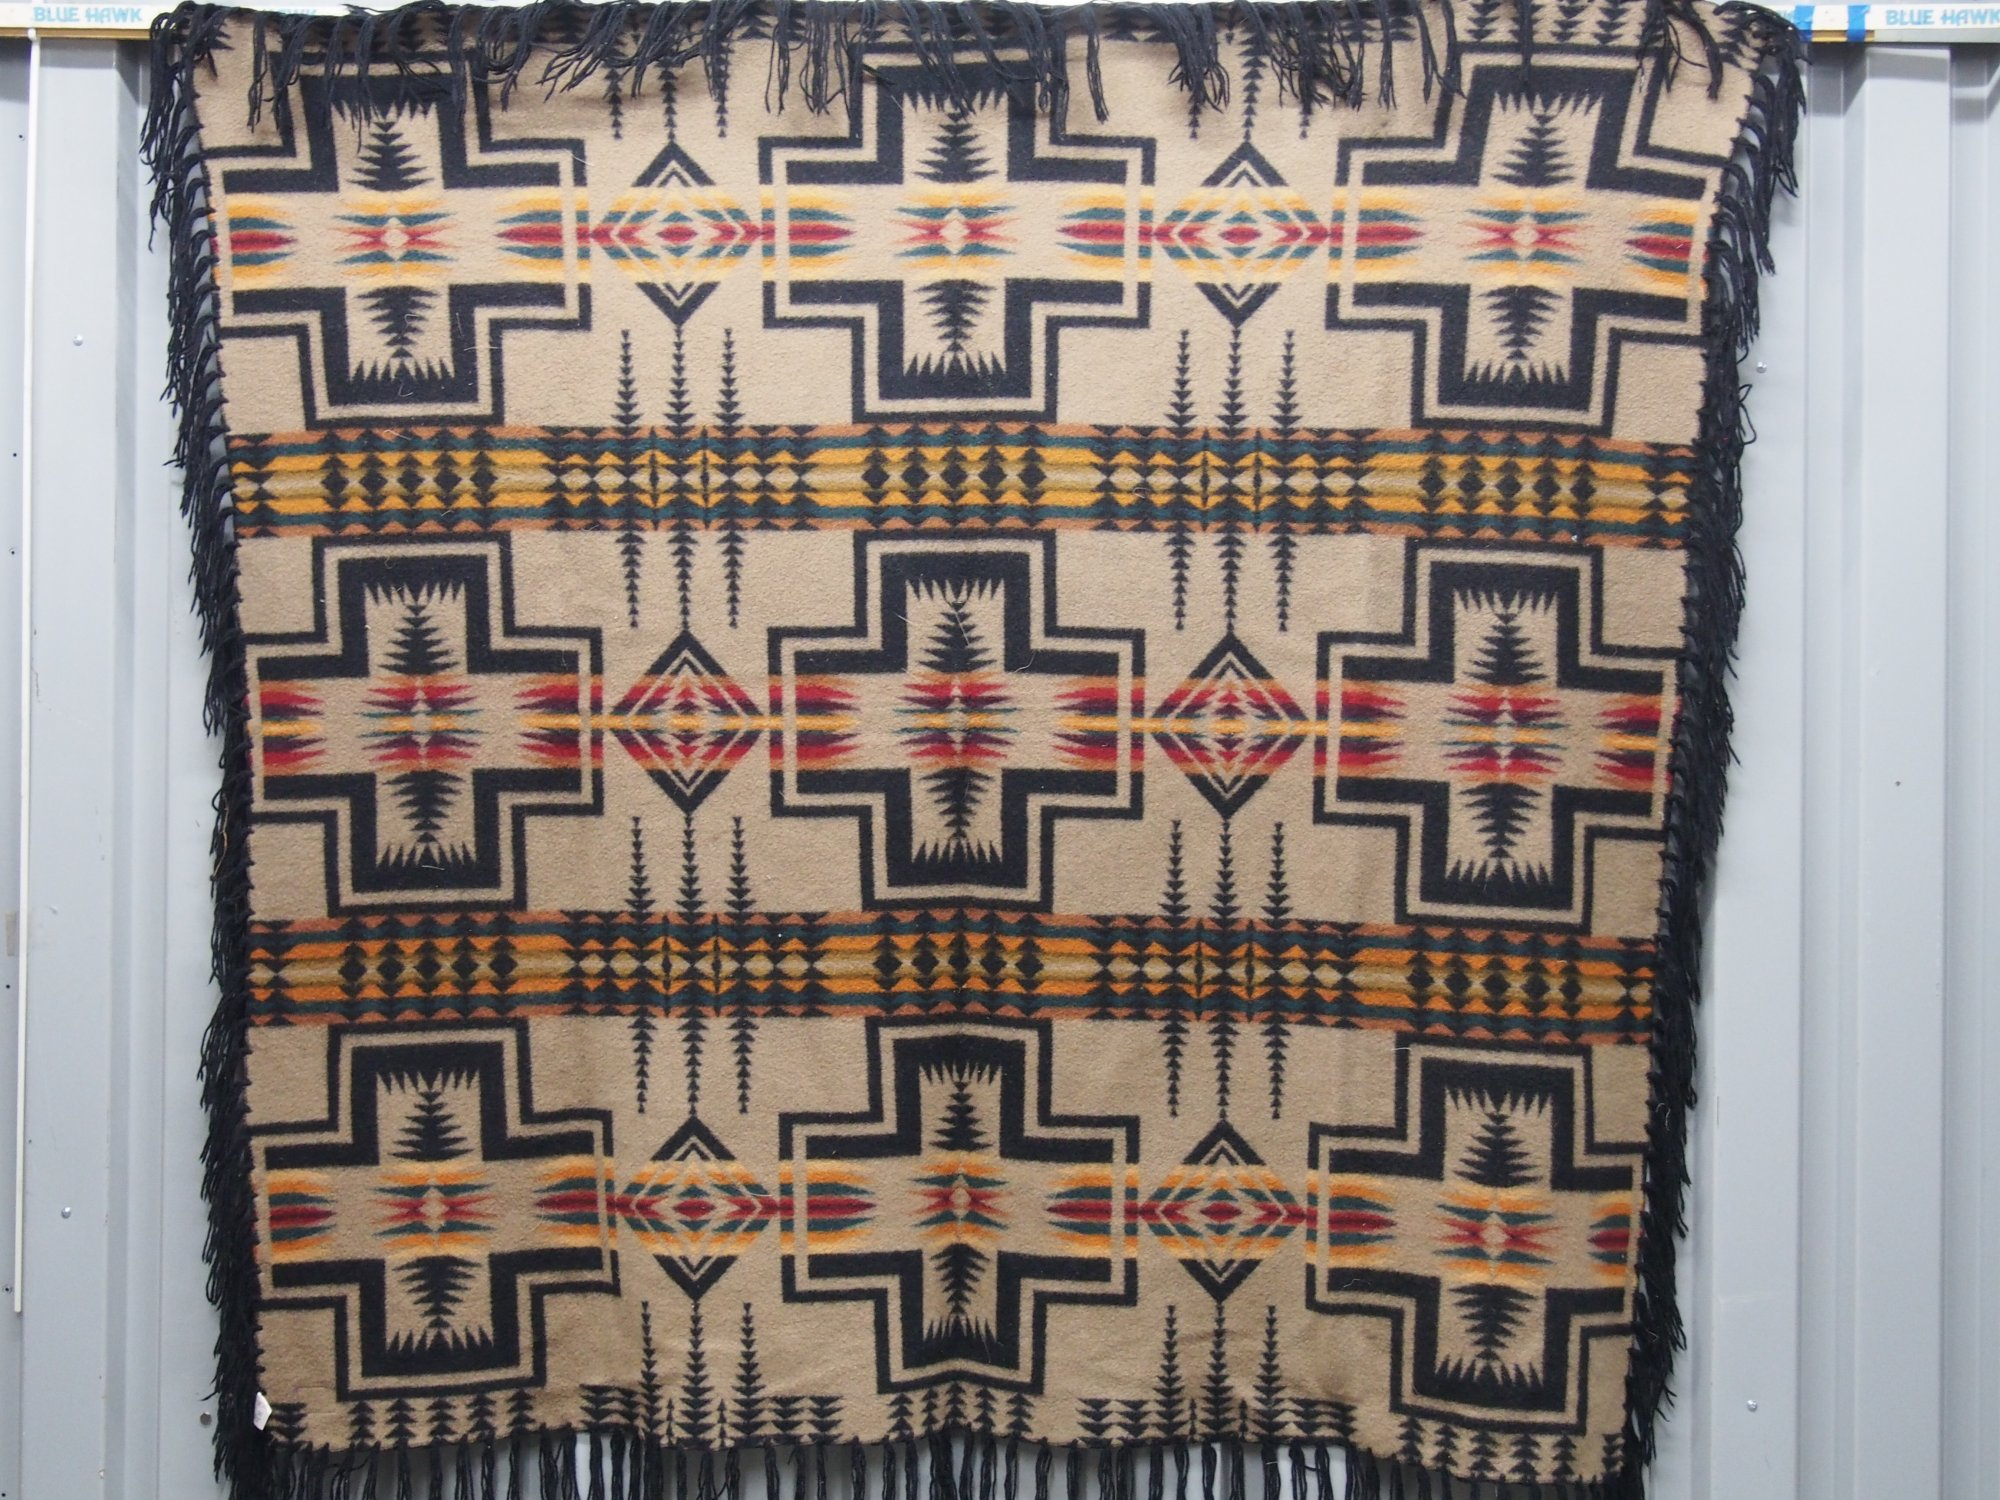 PENDLETON VINTAGE BLANKET 9 crosses geometric black